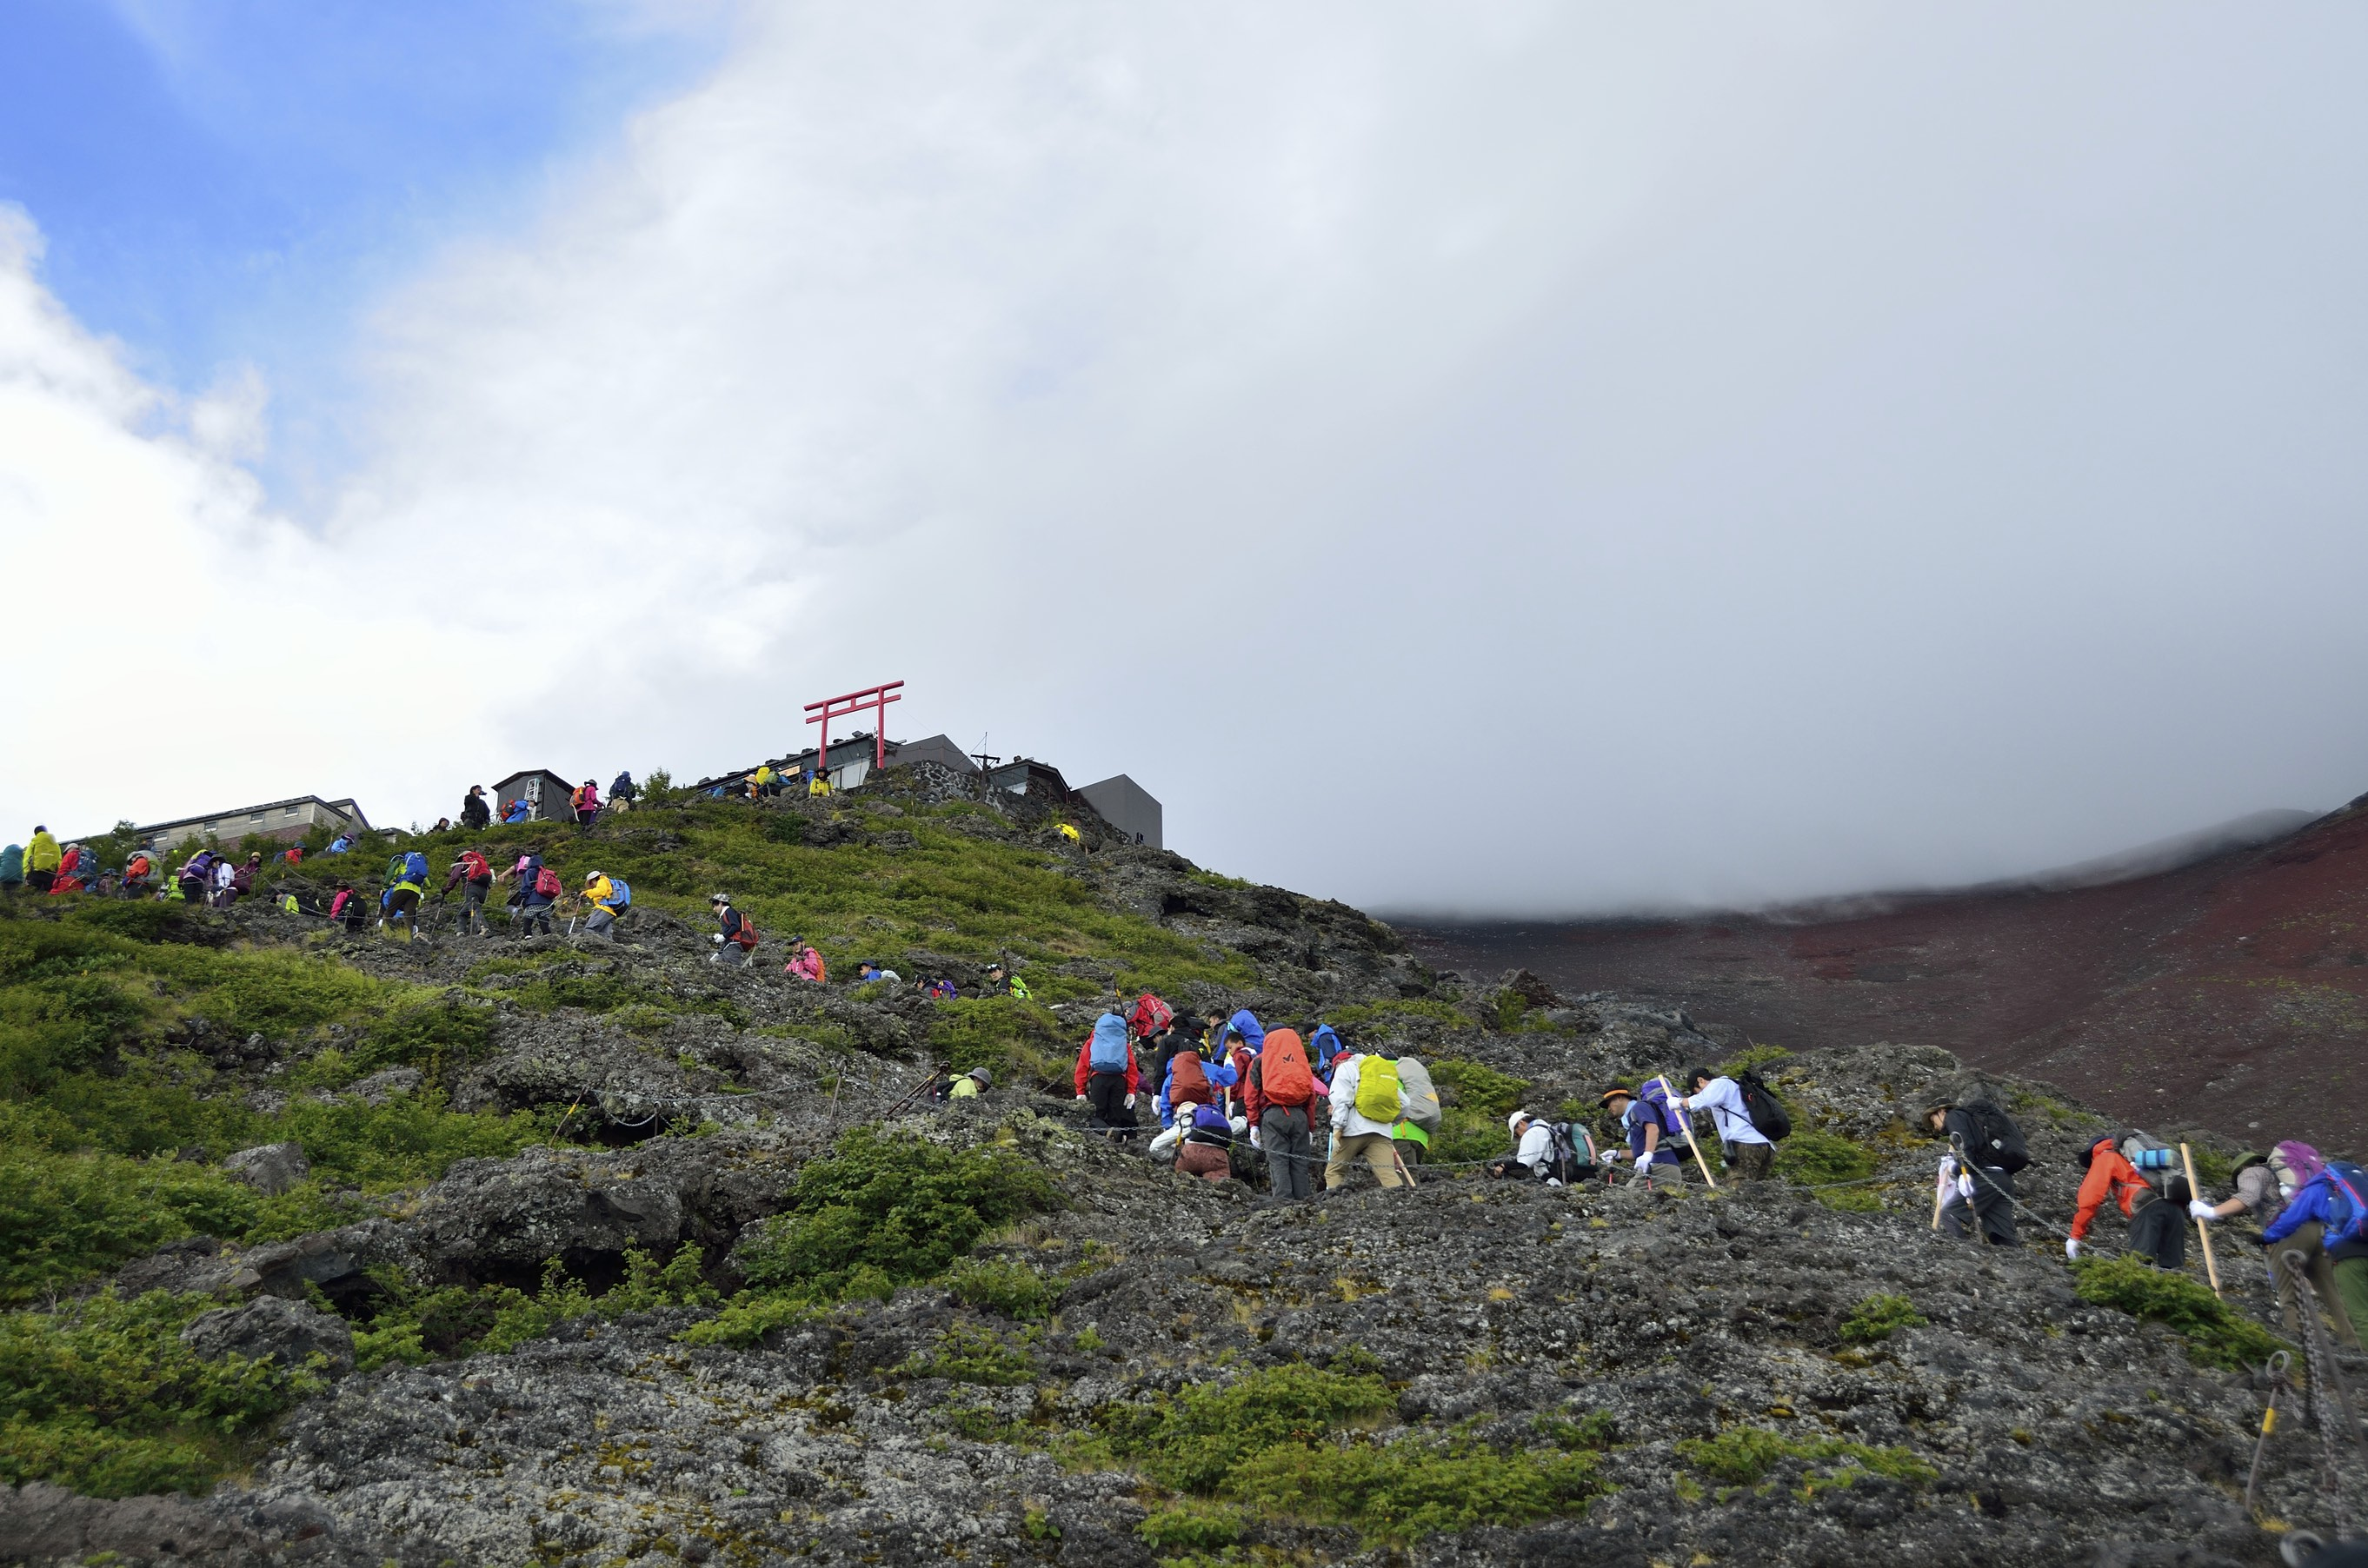 Yamanashi, japan - August 21, 2015: Mt. Fuji climbing,Yoshida Trail from 6th to 7th station. The climbing season of July-August, about 17 million people of climbers visit only in the Yoshida trail.